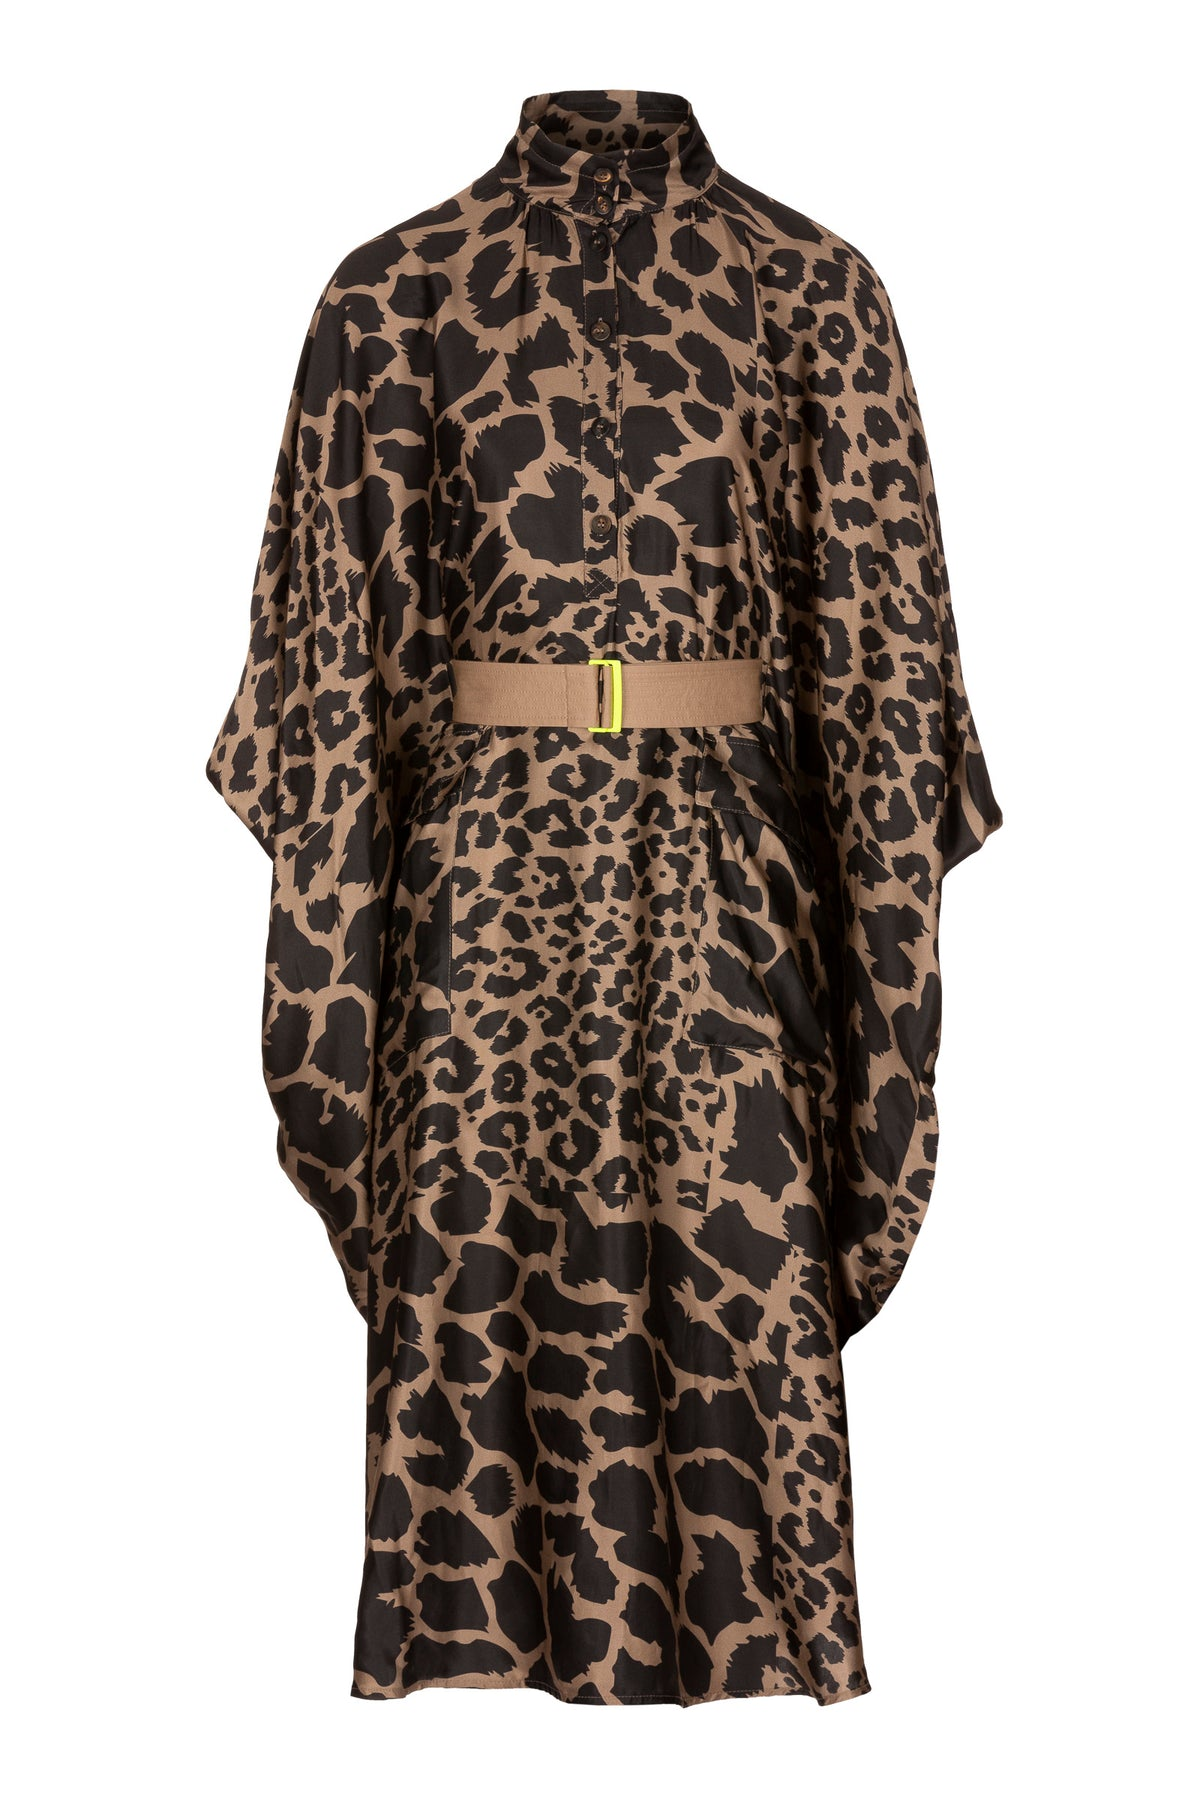 Force | Dress | Leopard